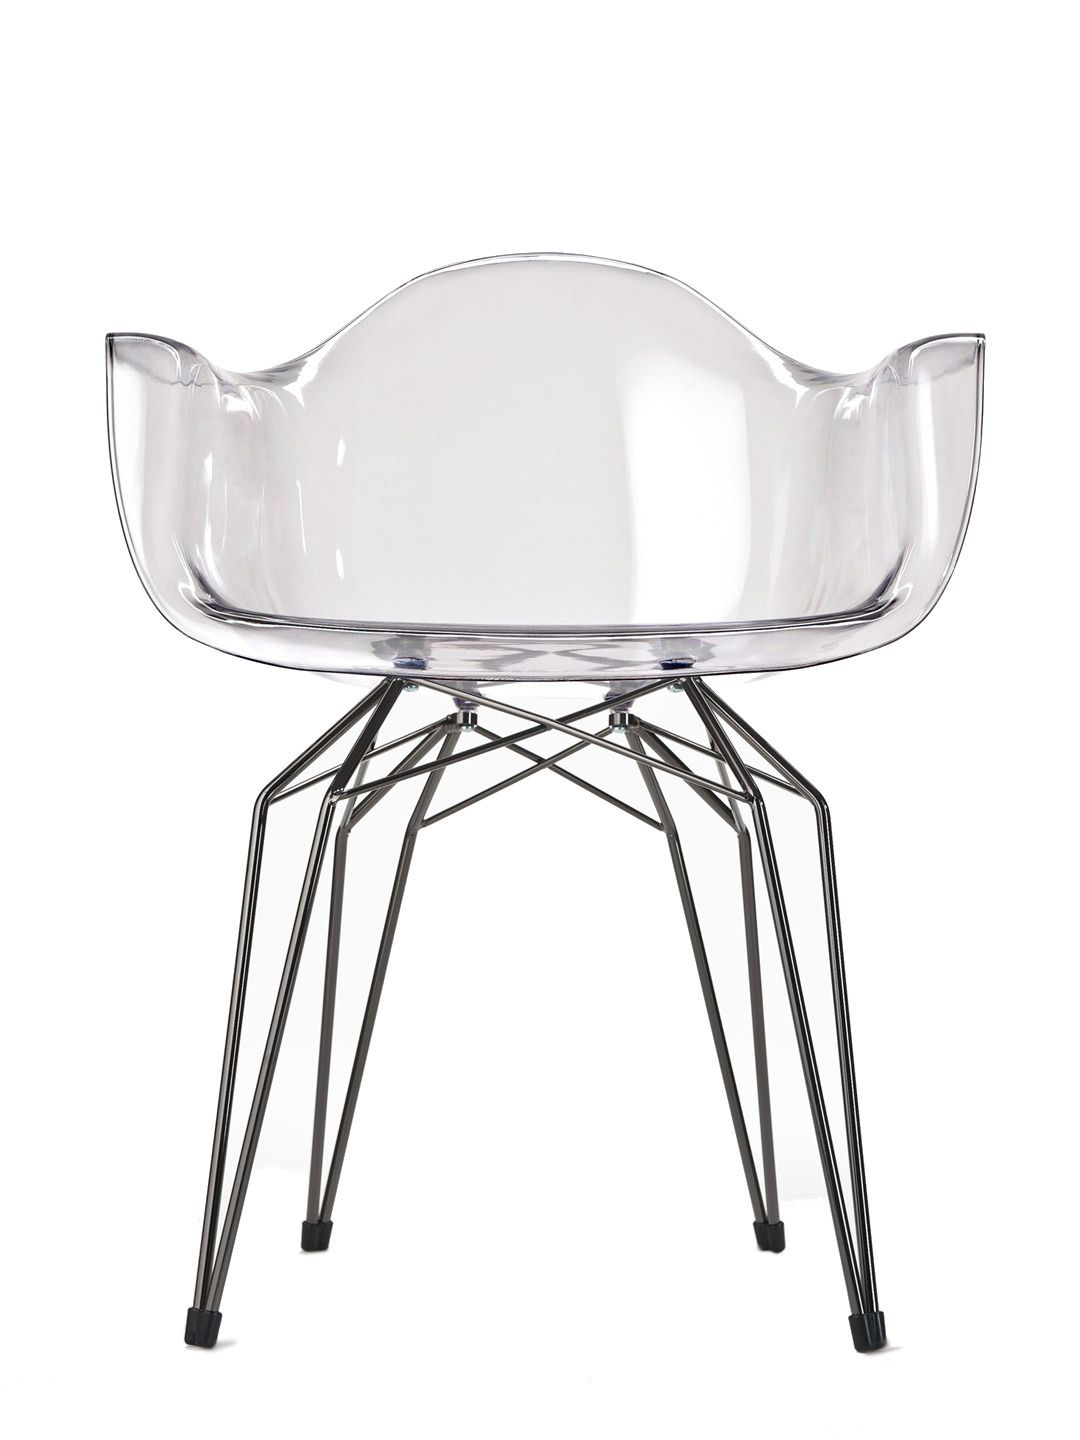 I Really Want A Lucite Chair For My Office And Am Hoping To Find